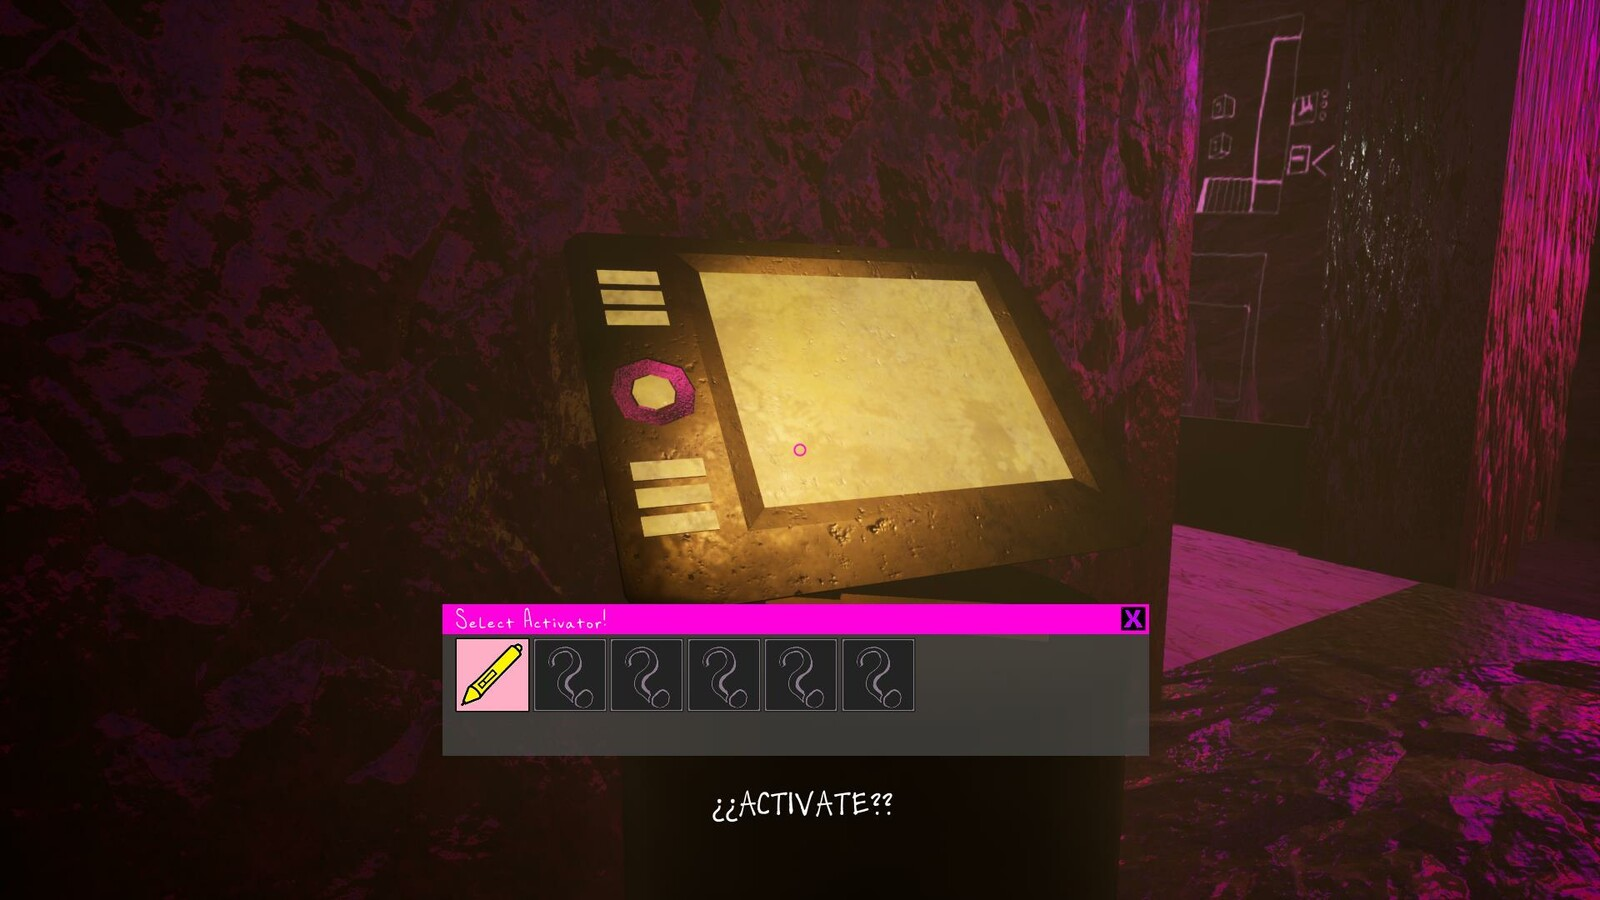 When you obtain the Wacom Pen from the Truth NPC, the Wacom Tablet lights up and can be activated.